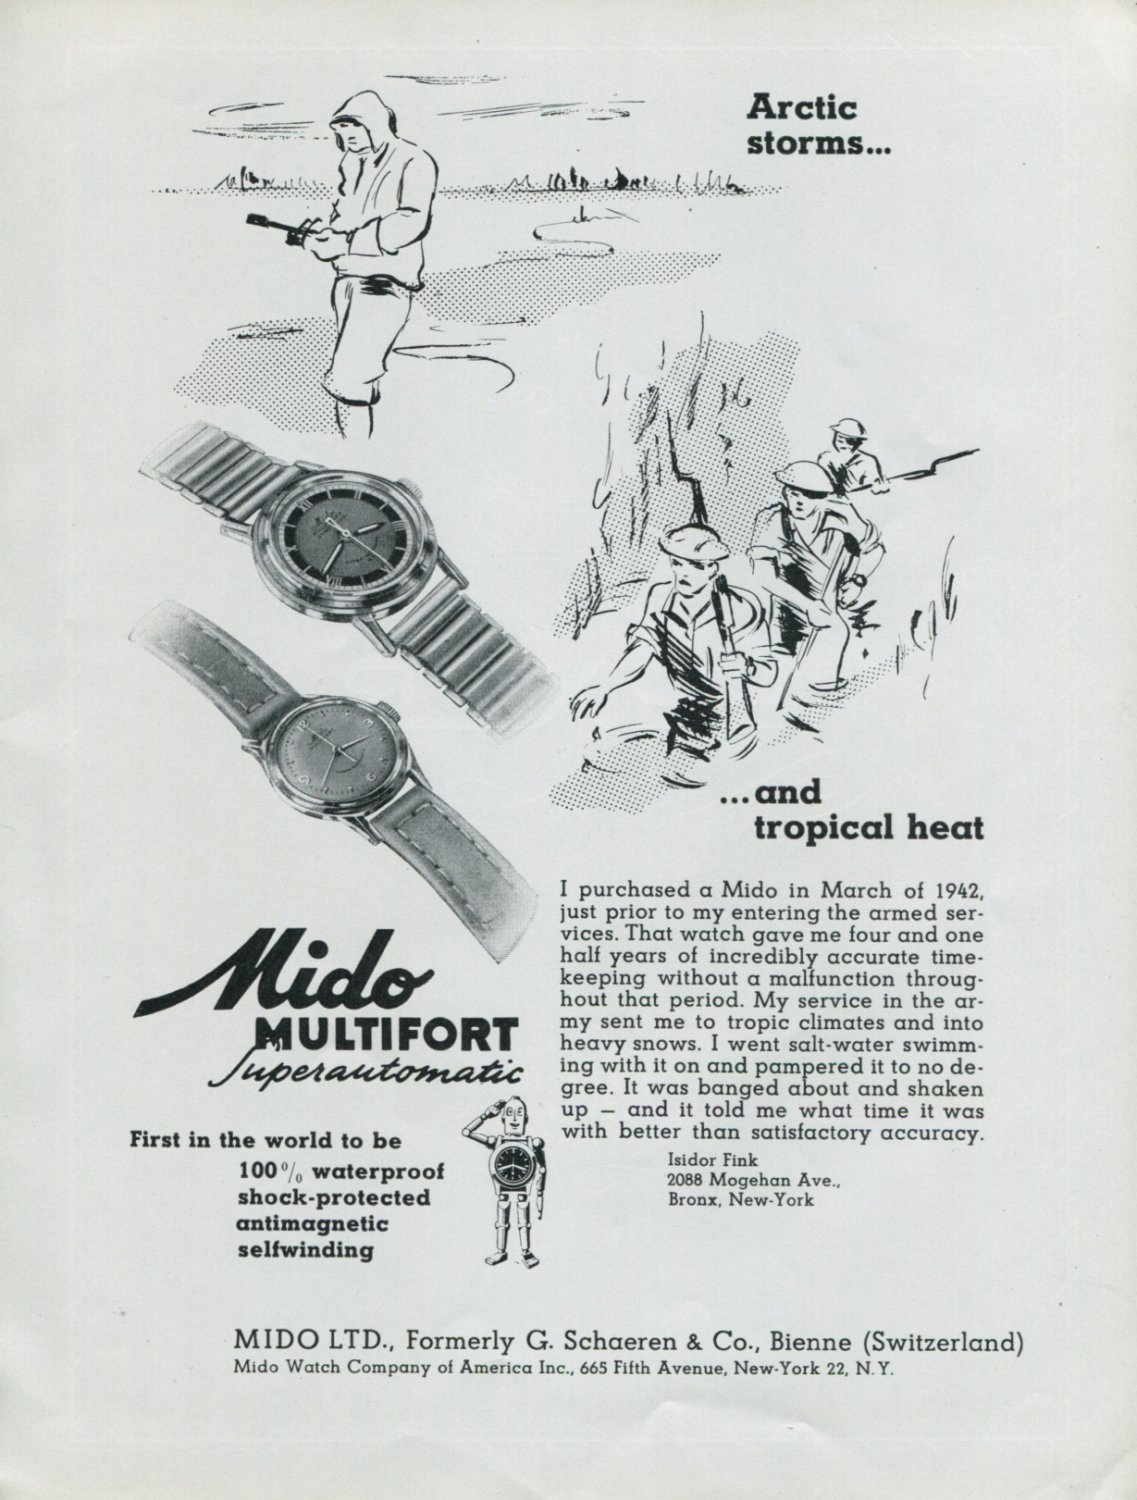 Vintage 1948 Mido Multifort Automatic Watch Advert Swiss Print Ad Publicite Suisse Montres Mido CH